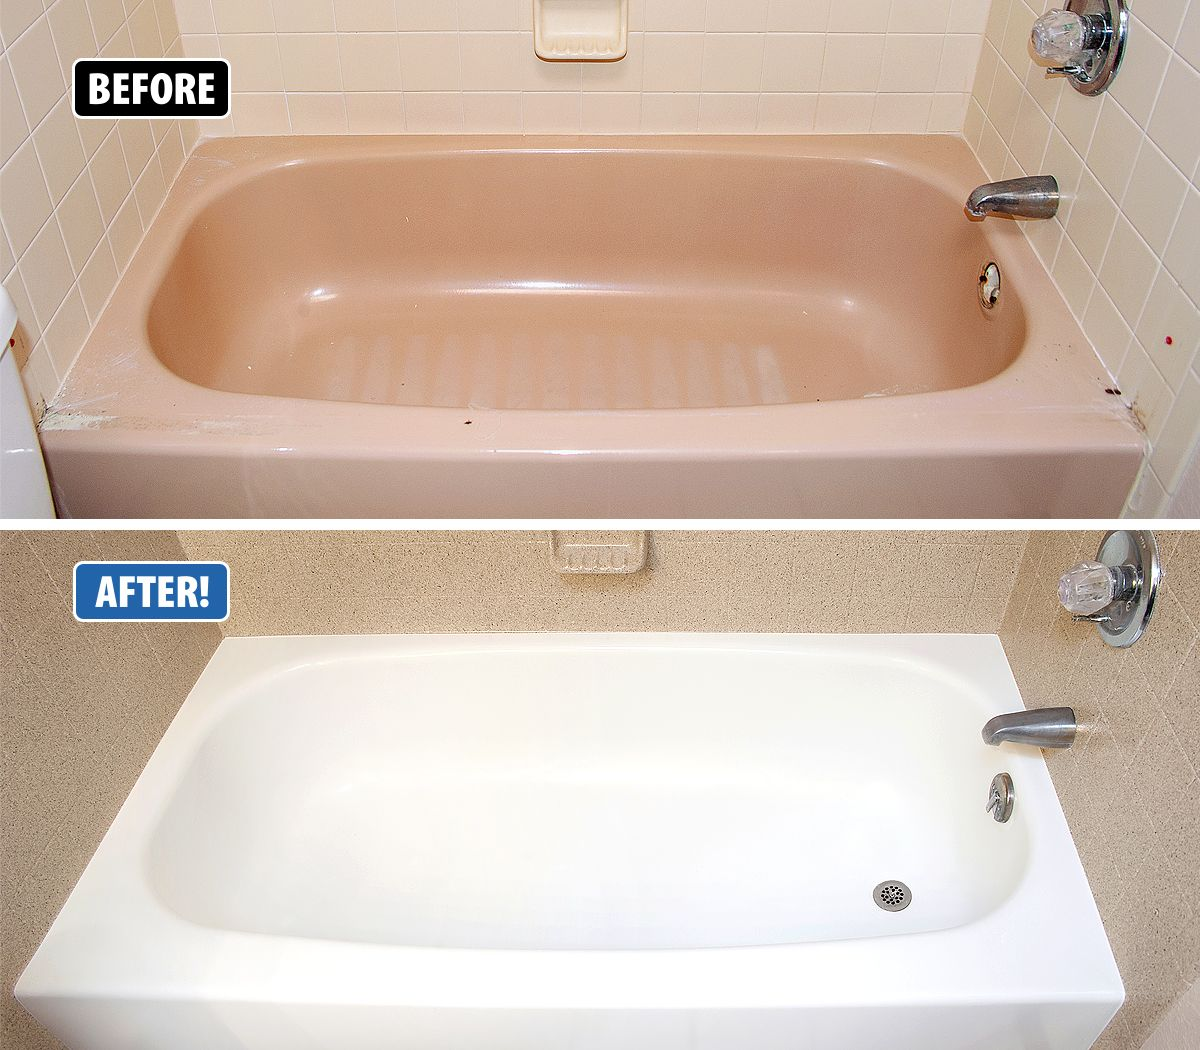 Bathtub Refinishing With Images Refinish Bathtub Tub